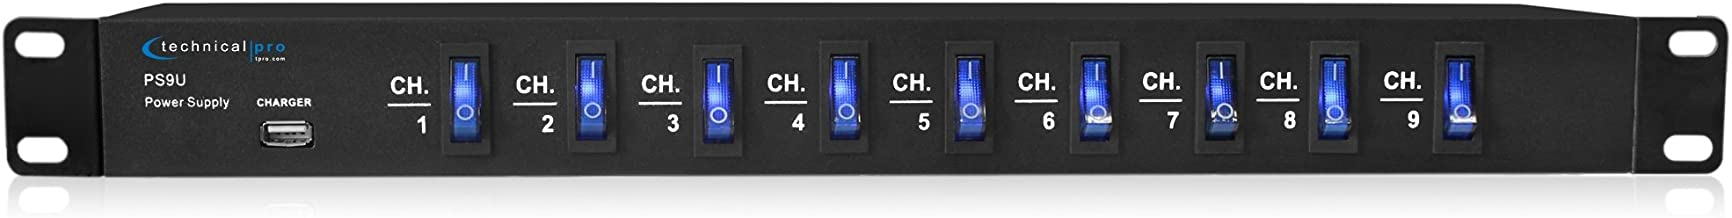 Technical Pro PS9U Rack Mount Power Supply with 5V USB Charging Port